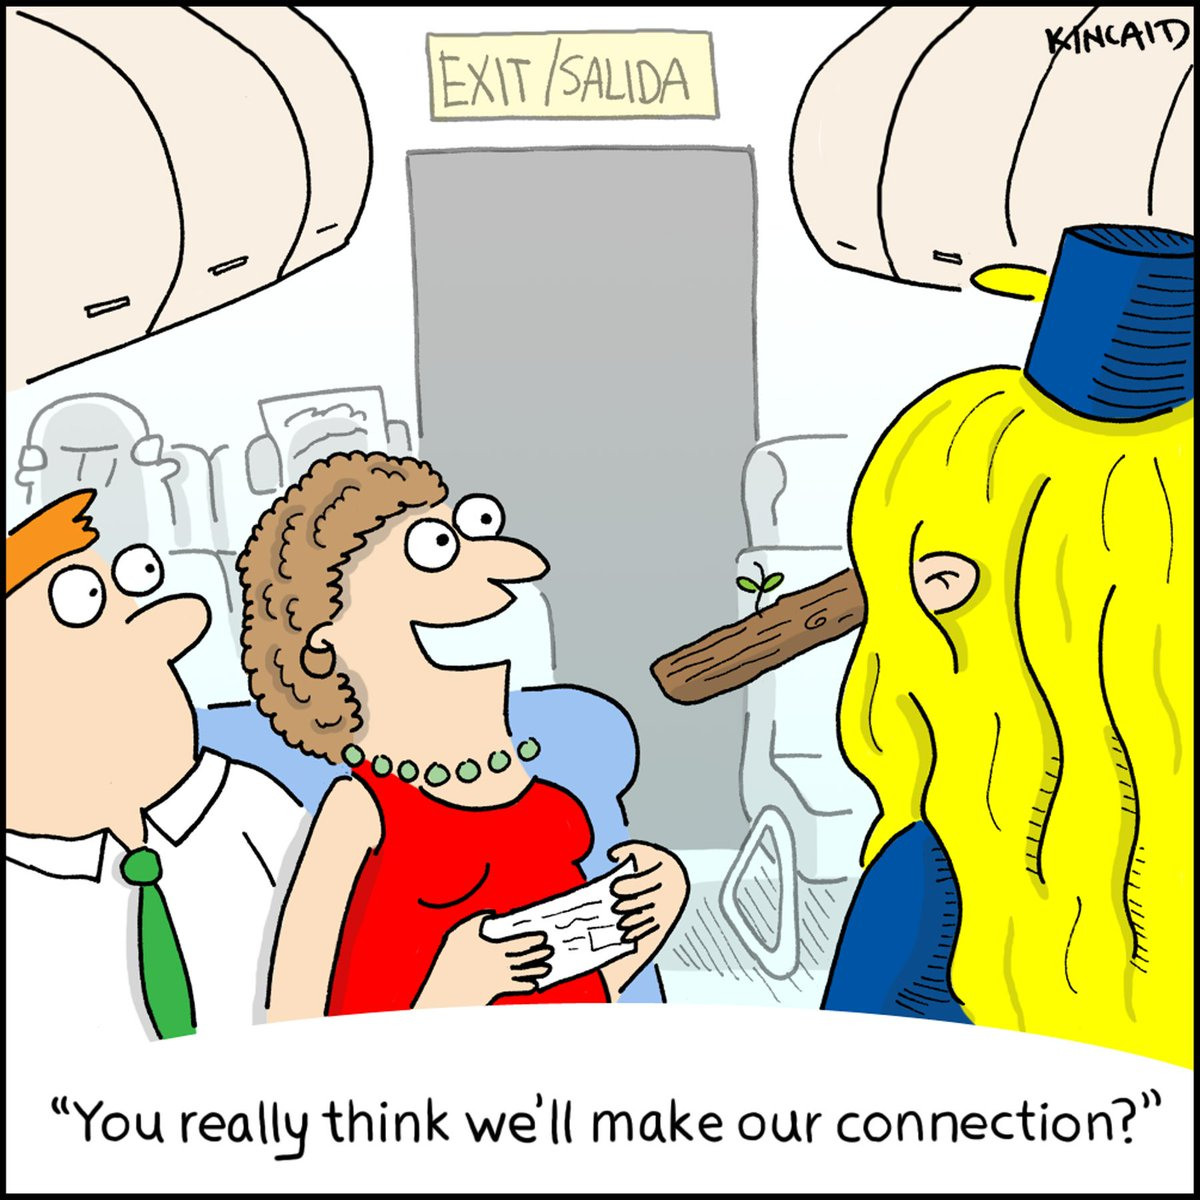 Of course you will! #connections  http://www. jetlaggedcomic.com  &nbsp;   is all you need in life. <br>http://pic.twitter.com/7FYILLyKs1